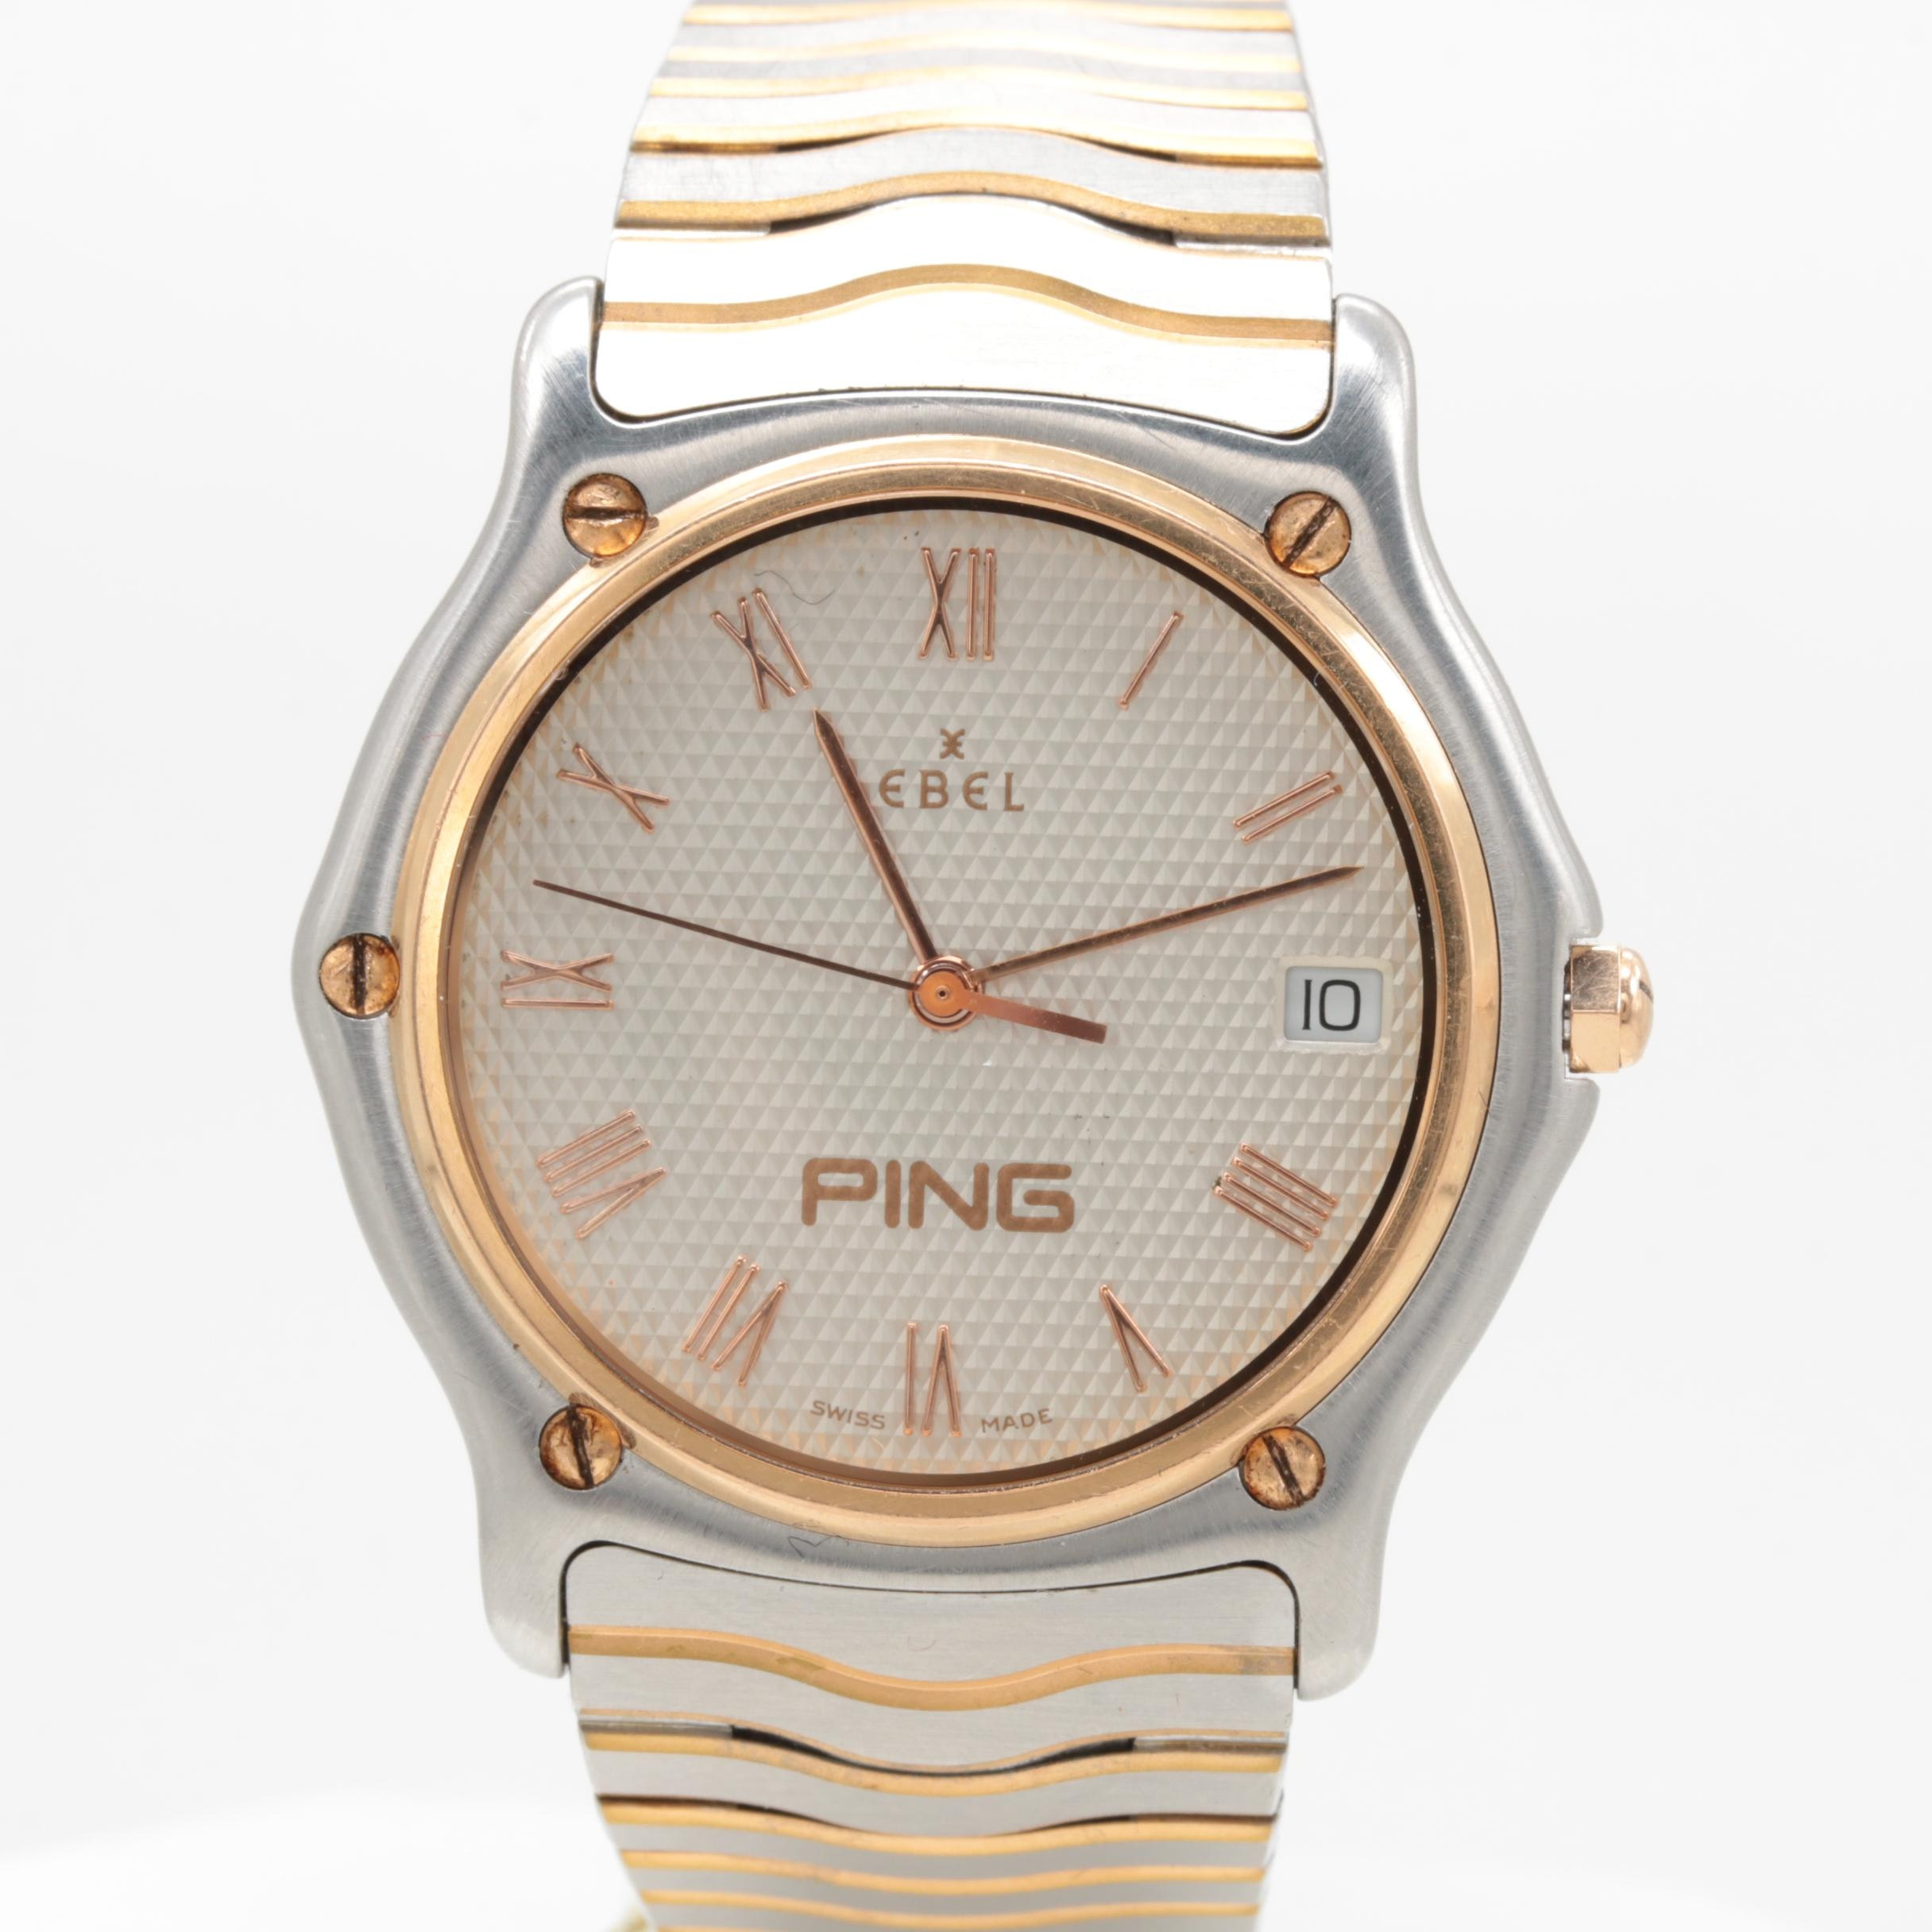 """Ebel Stainless Steel """"Ping"""" Award Wristwatch with 18K Rose Gold Bezel"""